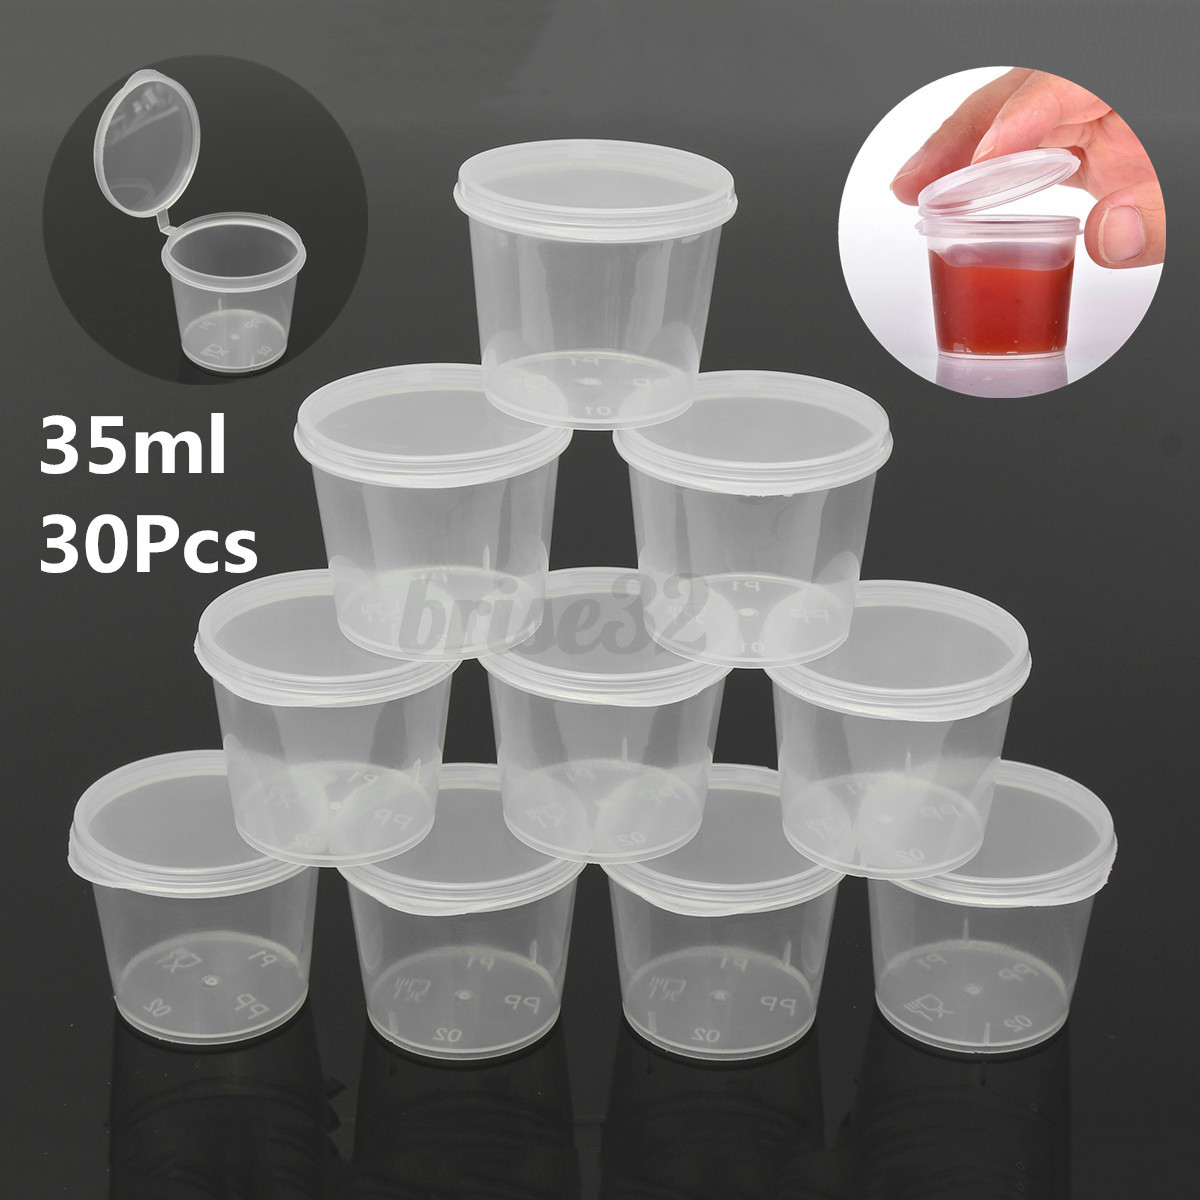 Plastic Containers With Lids 35ml 30 Set Small Plastic Sauce Cups Food Storage